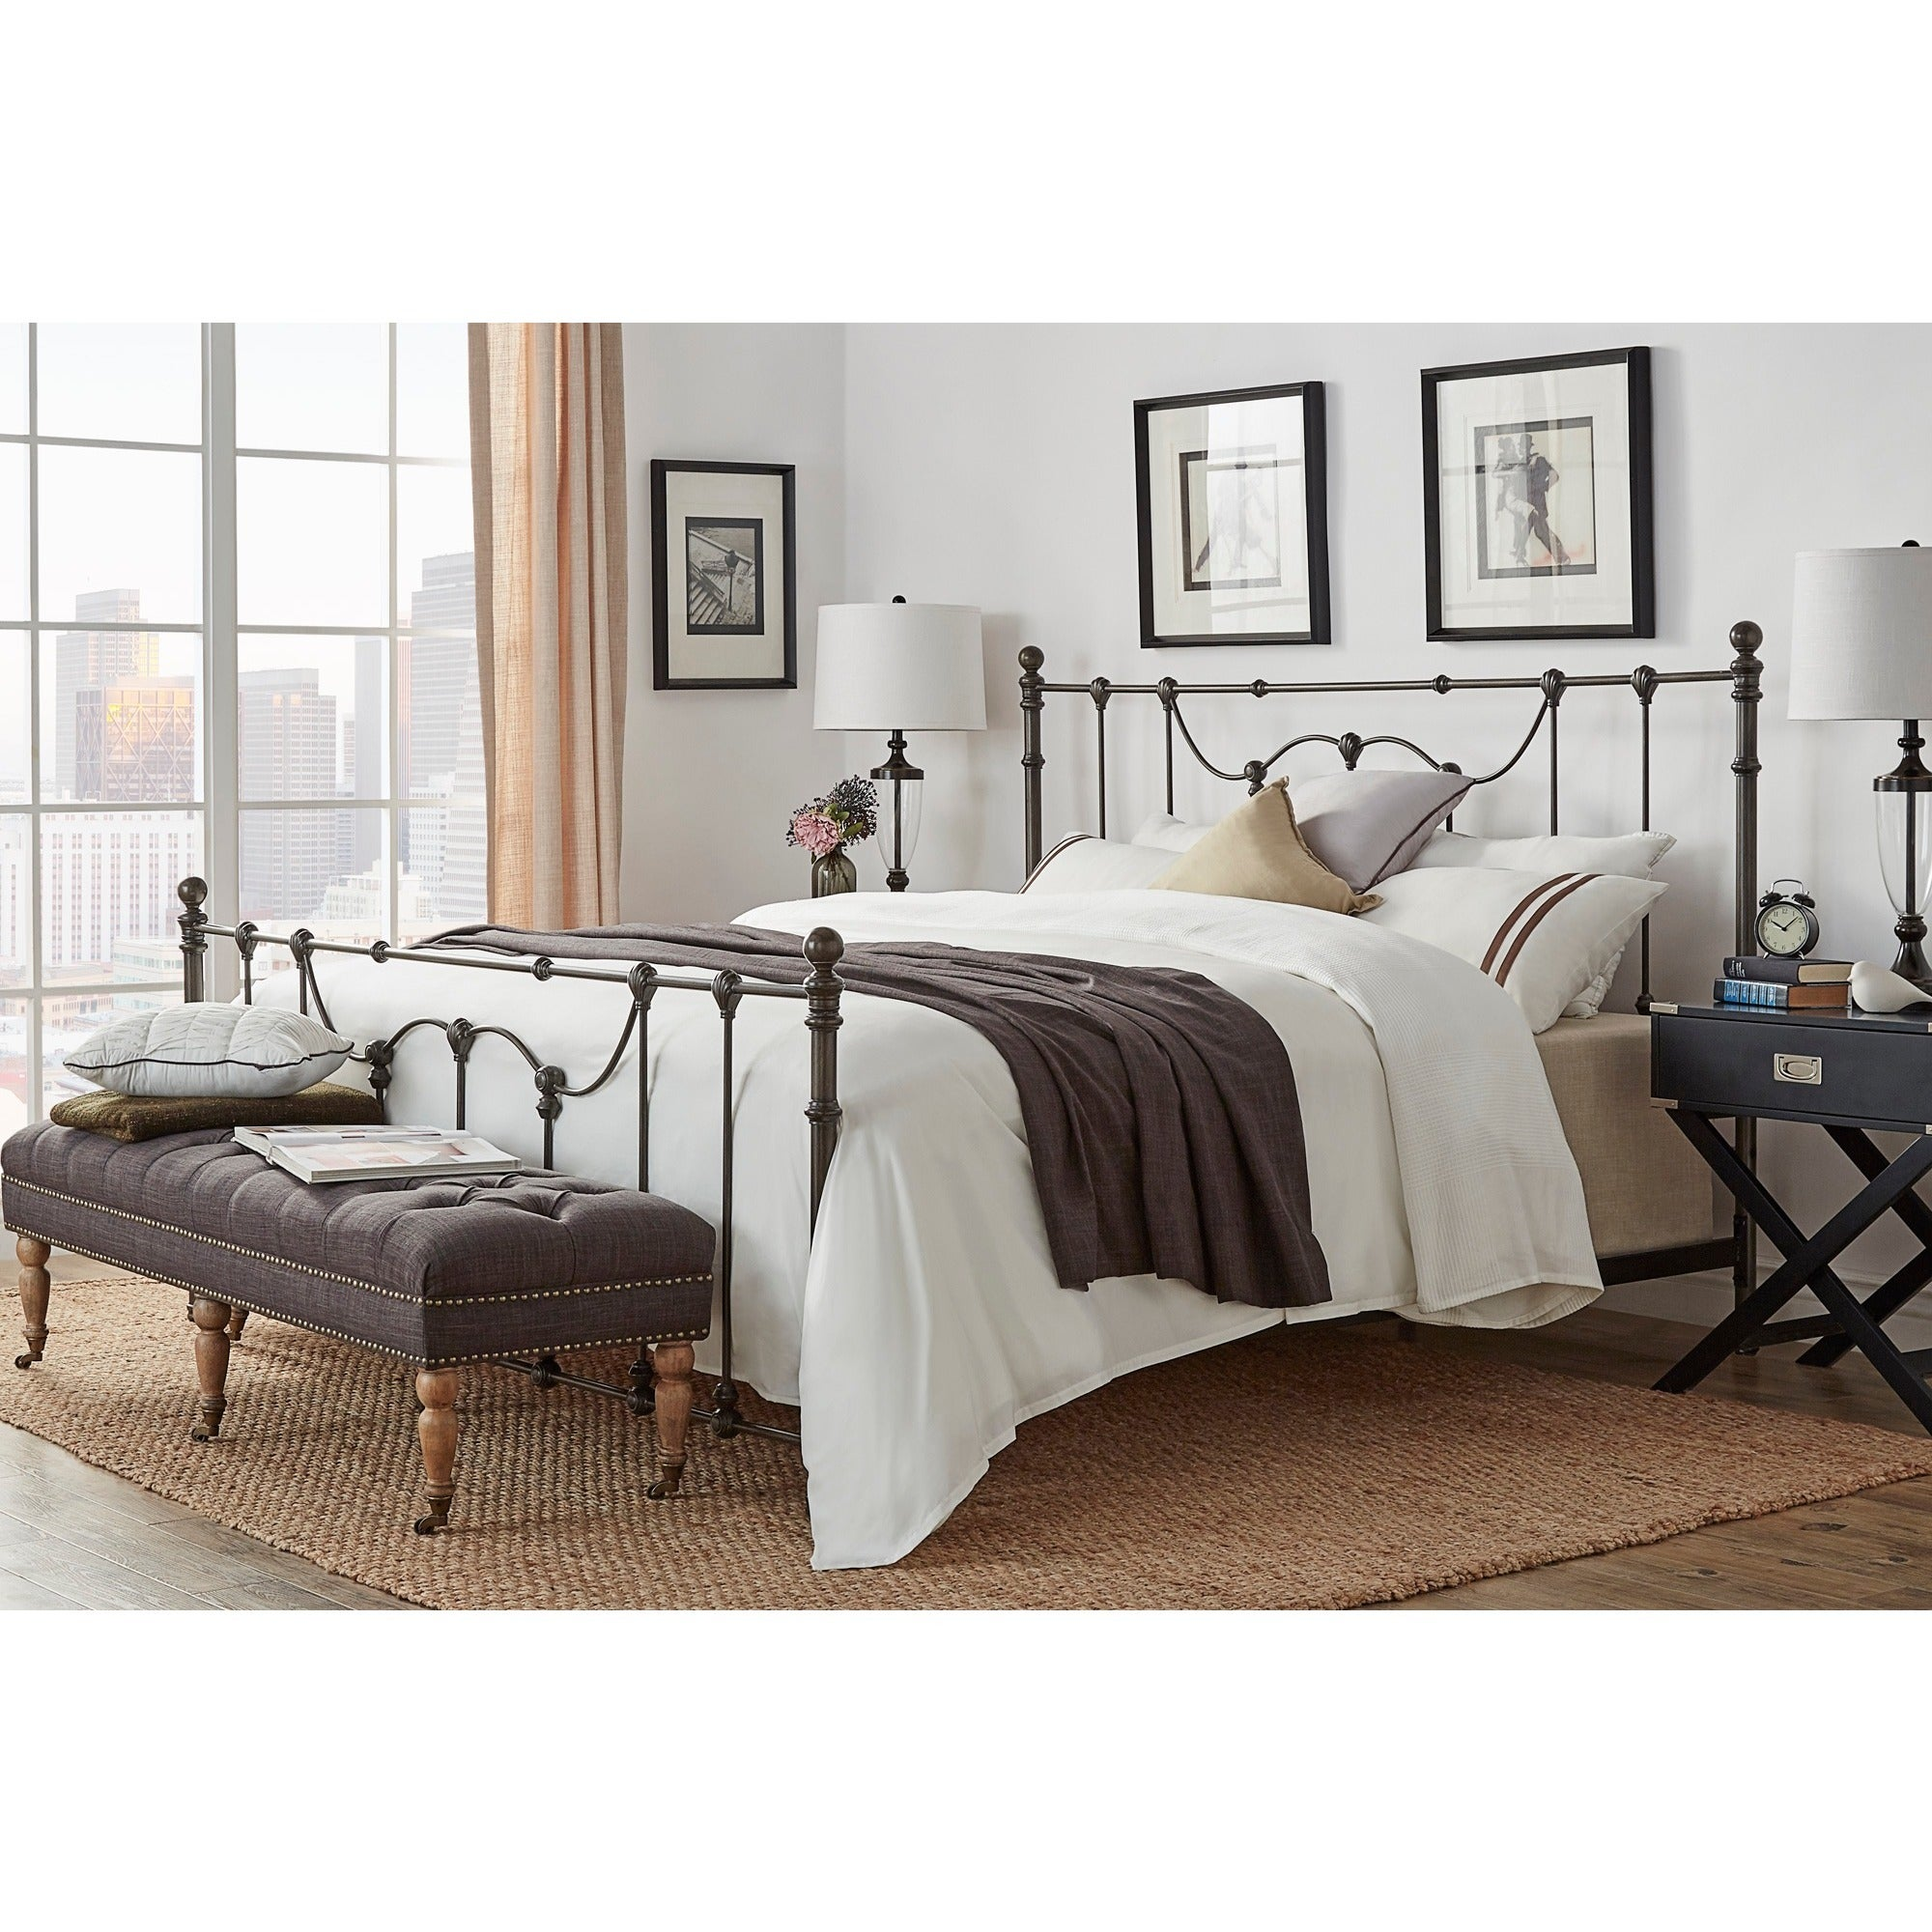 Shop Bellwood Victorian Iron Metal Bed By INSPIRE Q Classic